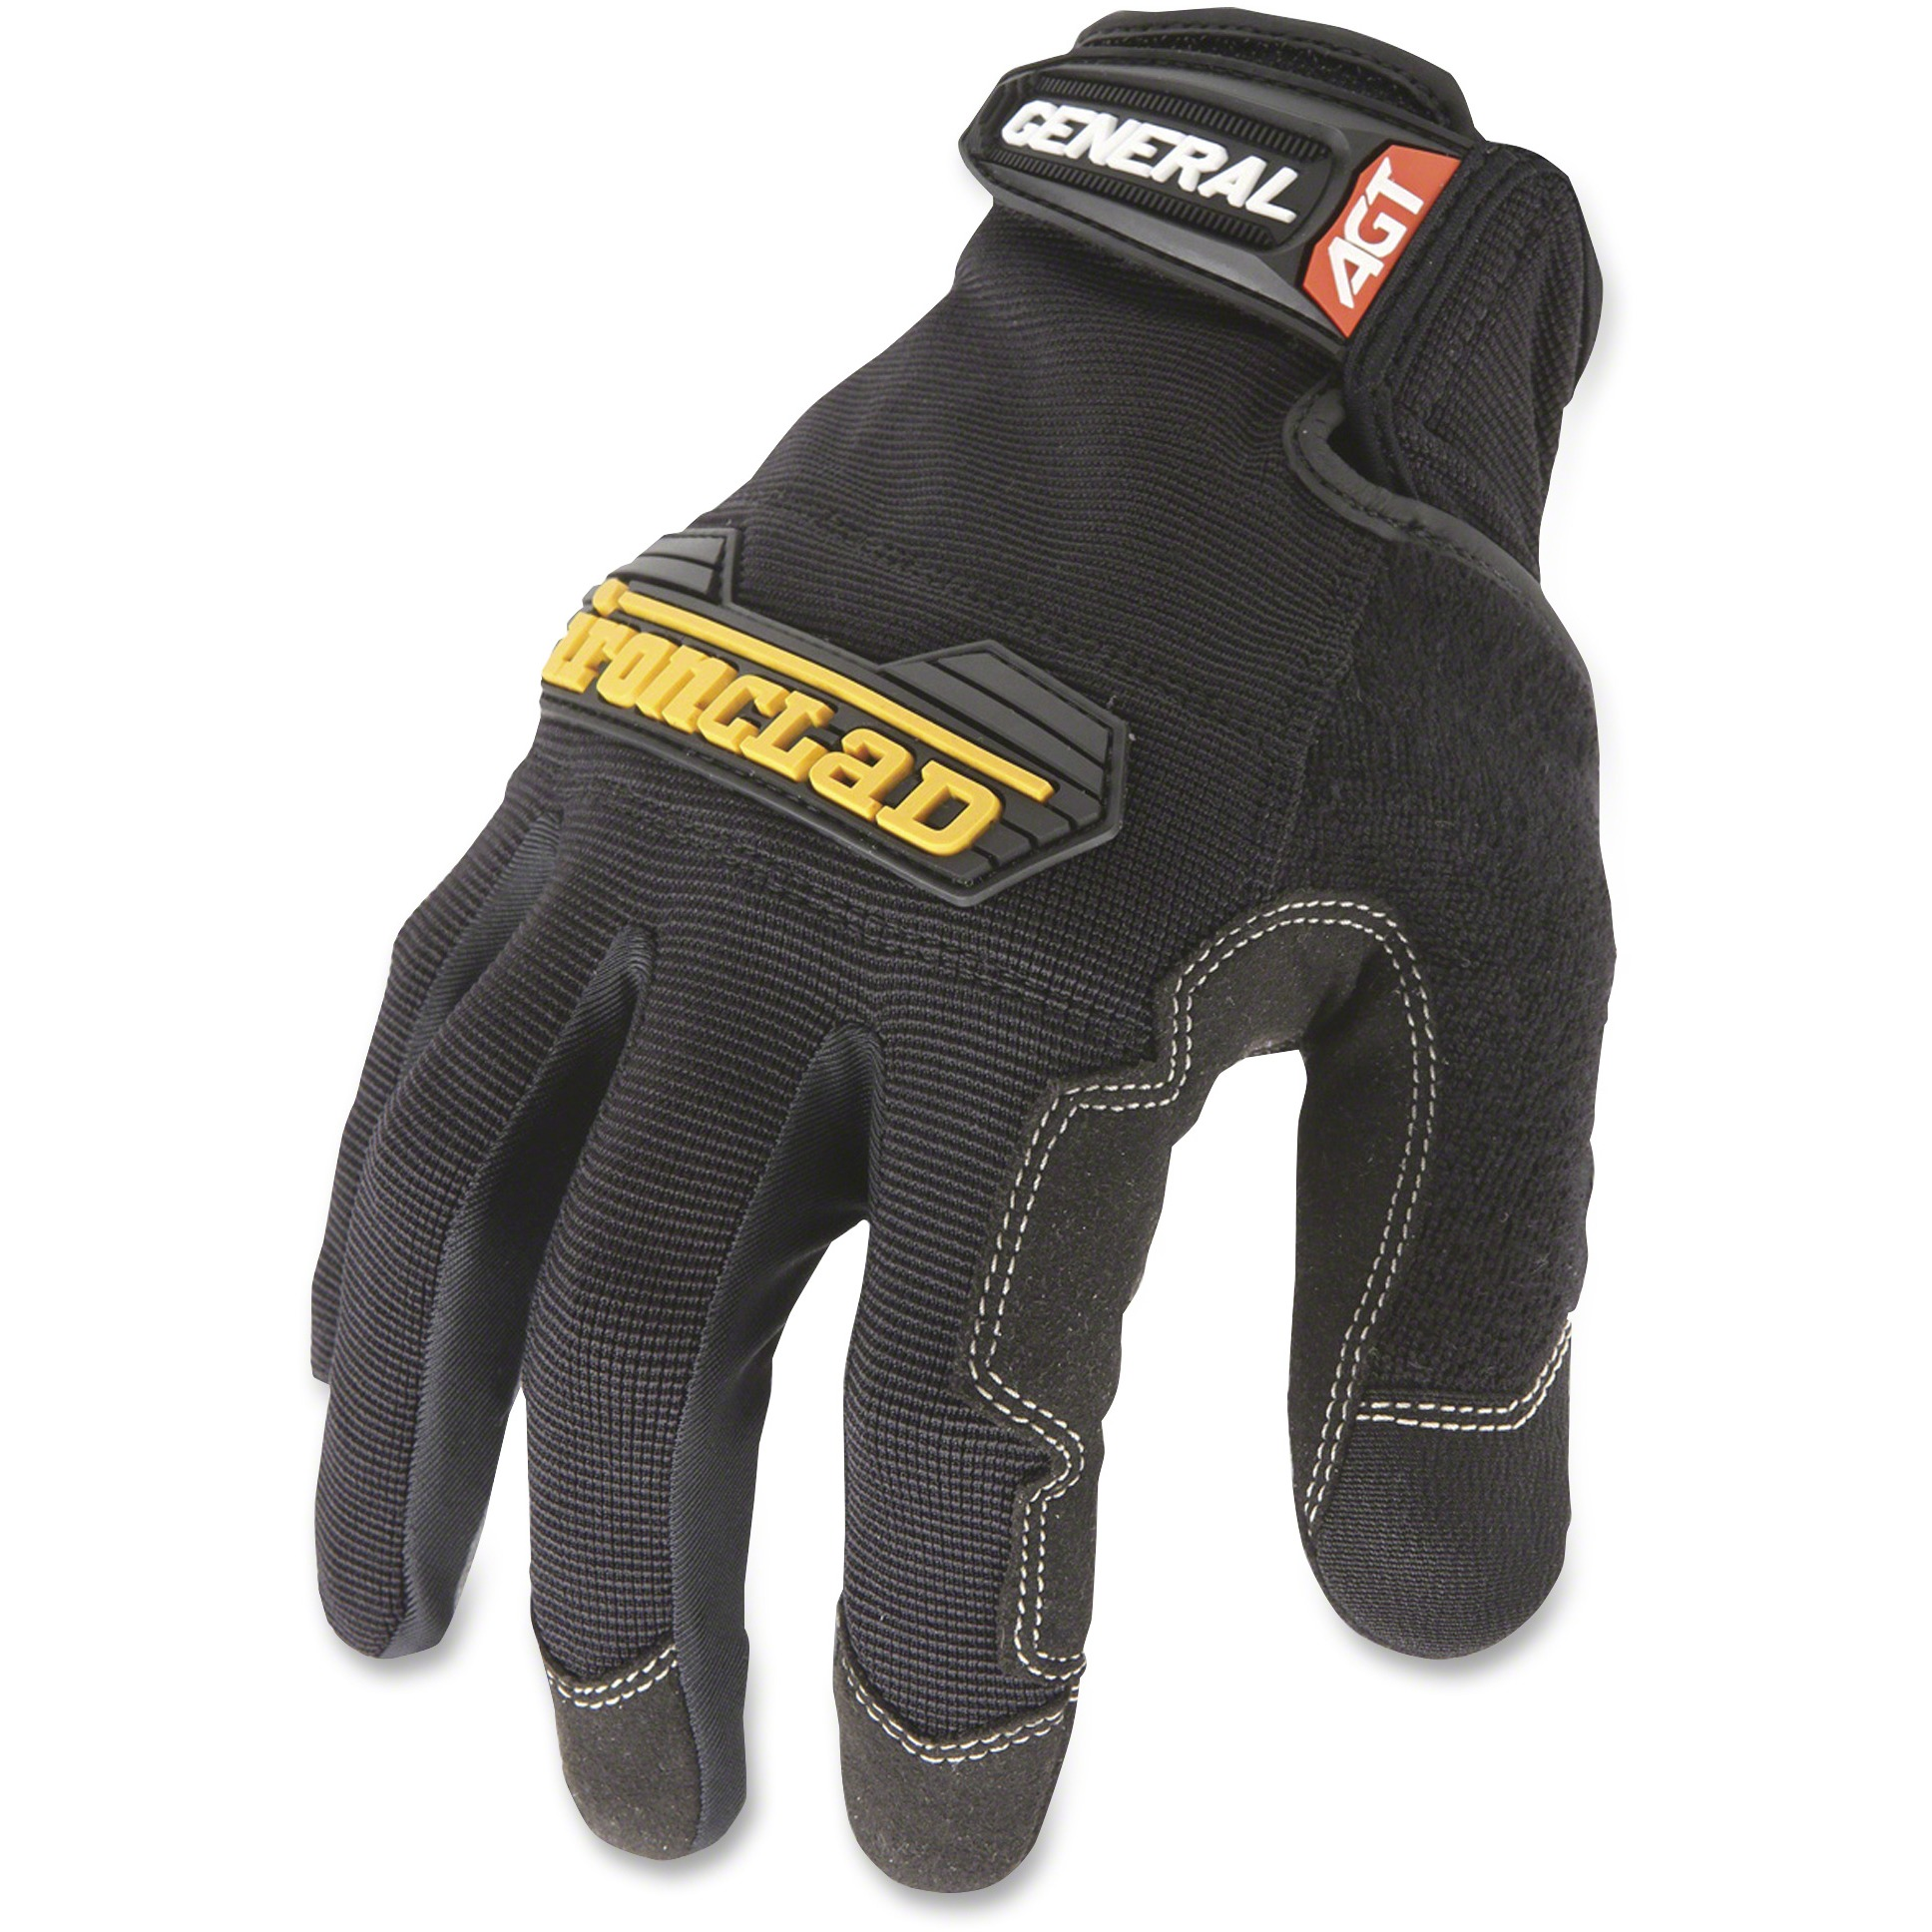 Ironclad General Utility Gloves, Black, 2 / Pair (Quantity)